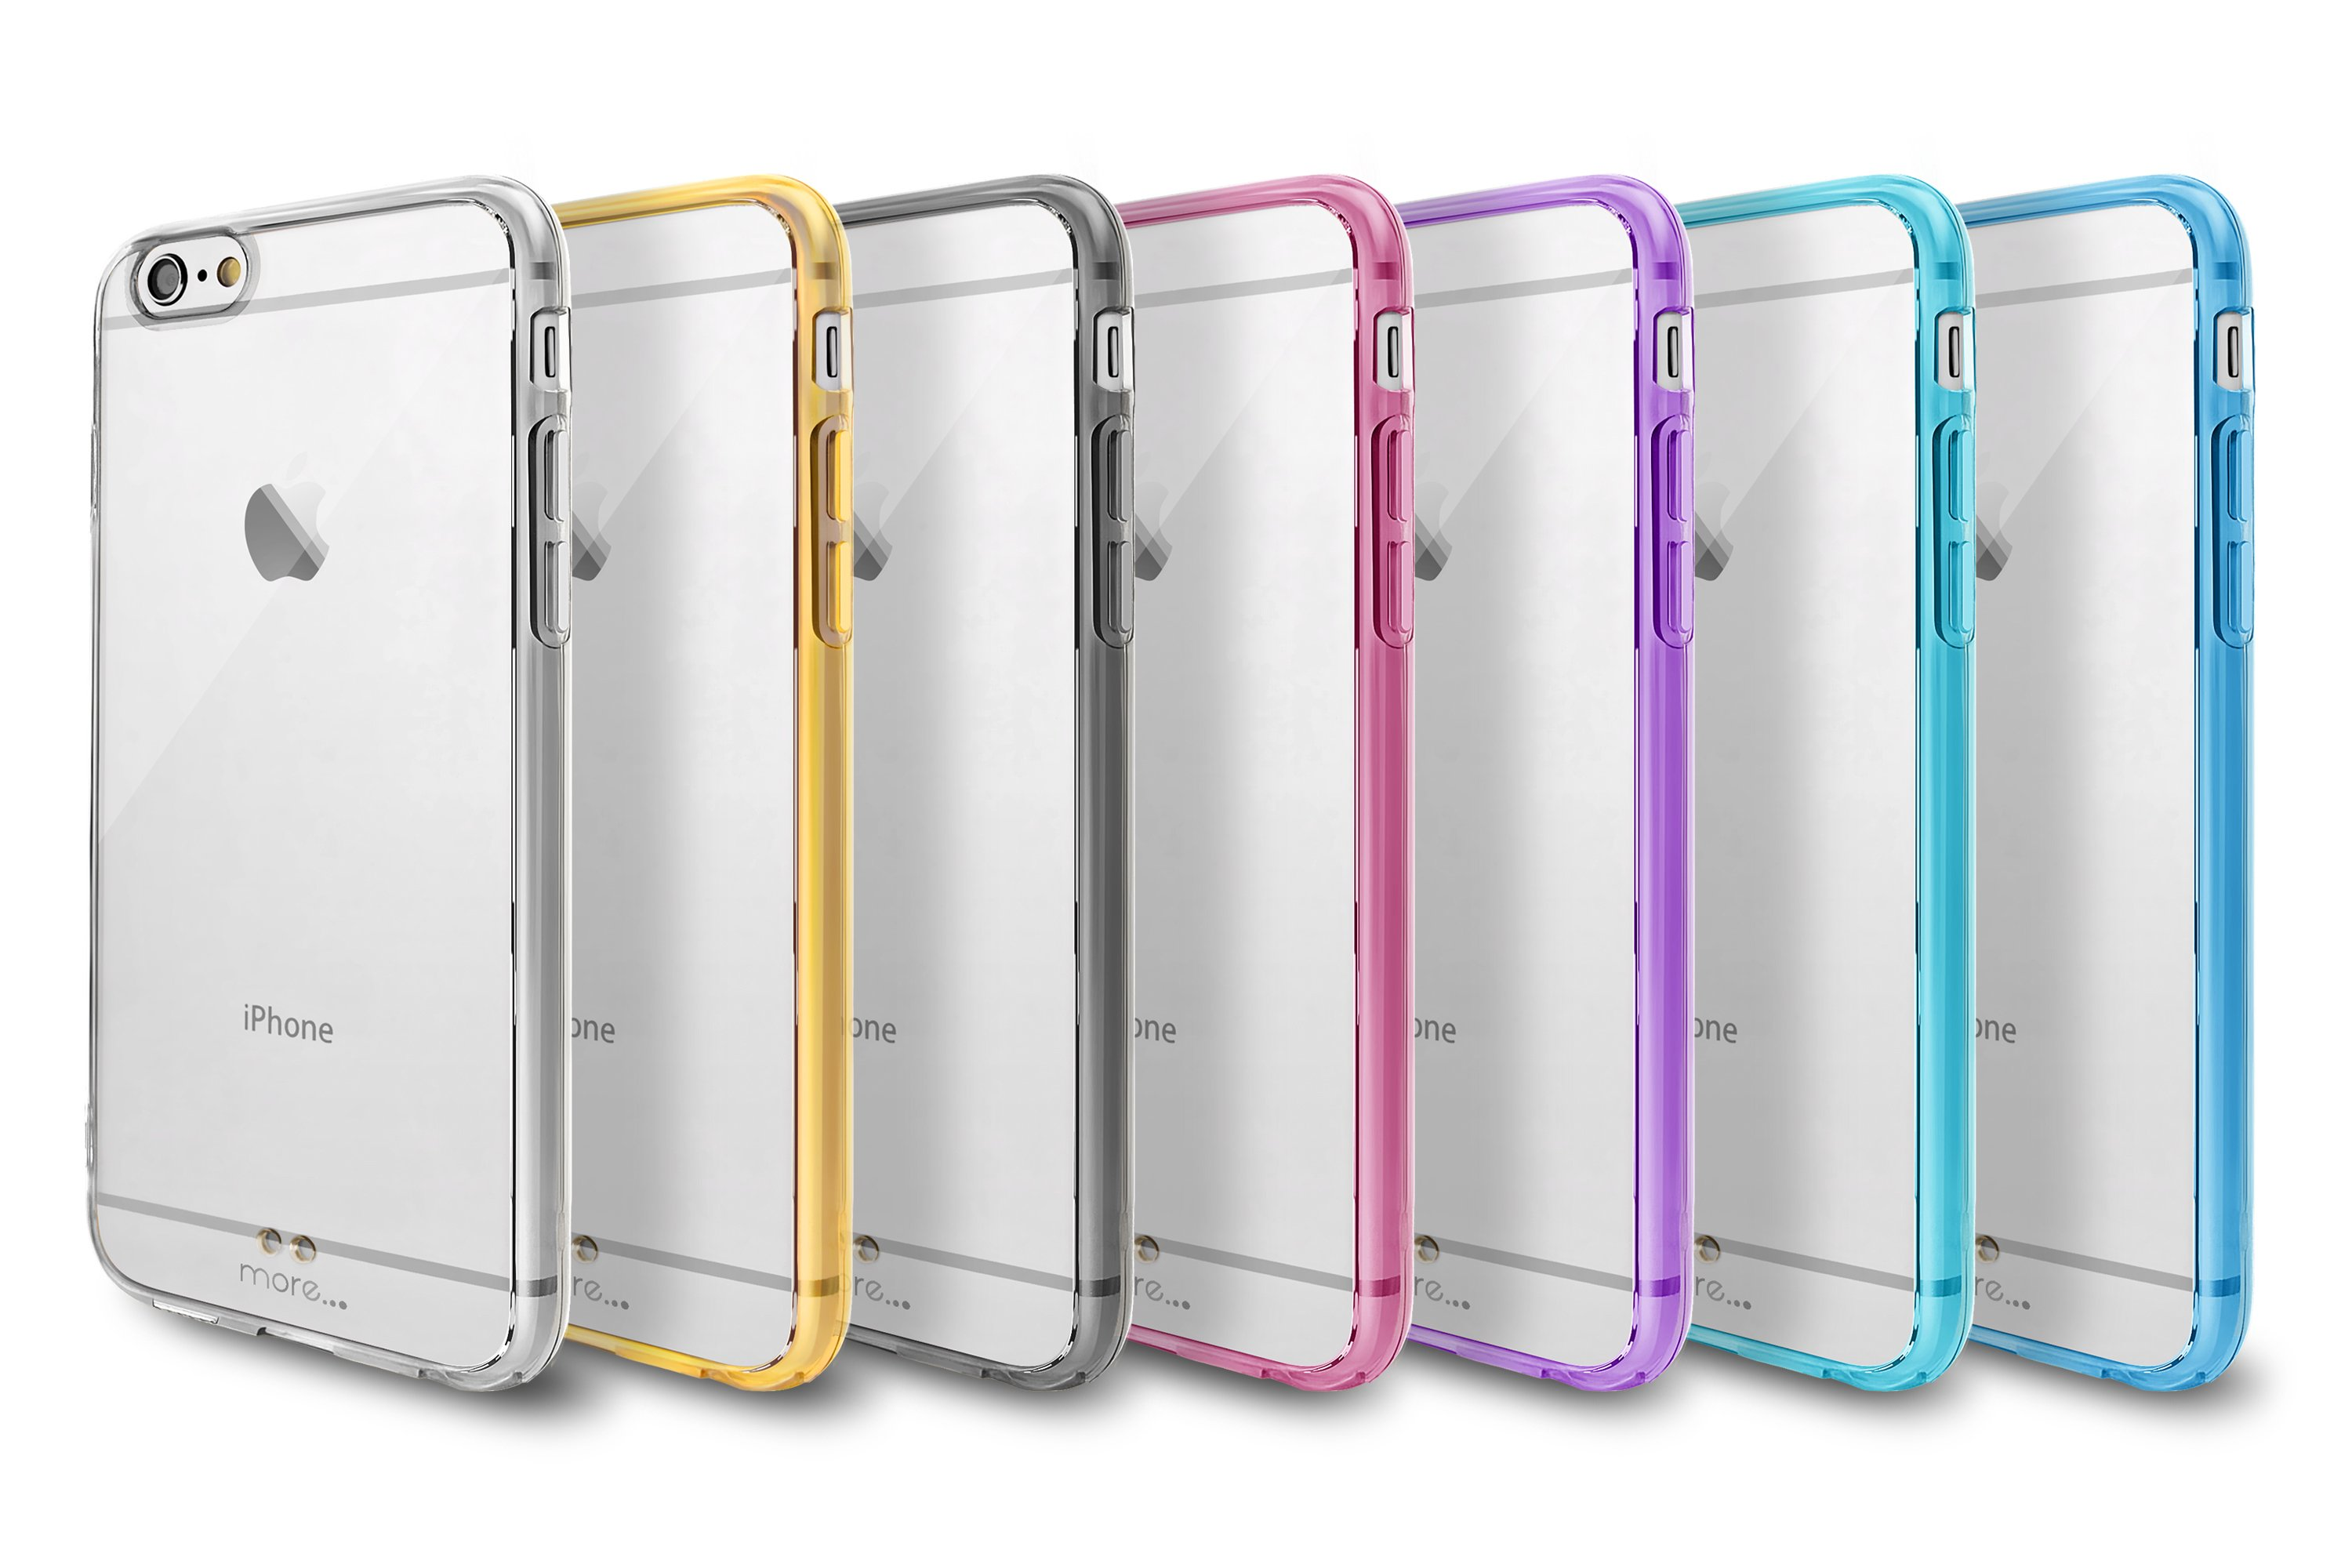 Thinnest Bumper Case for iPhone 6s and 6s Plus